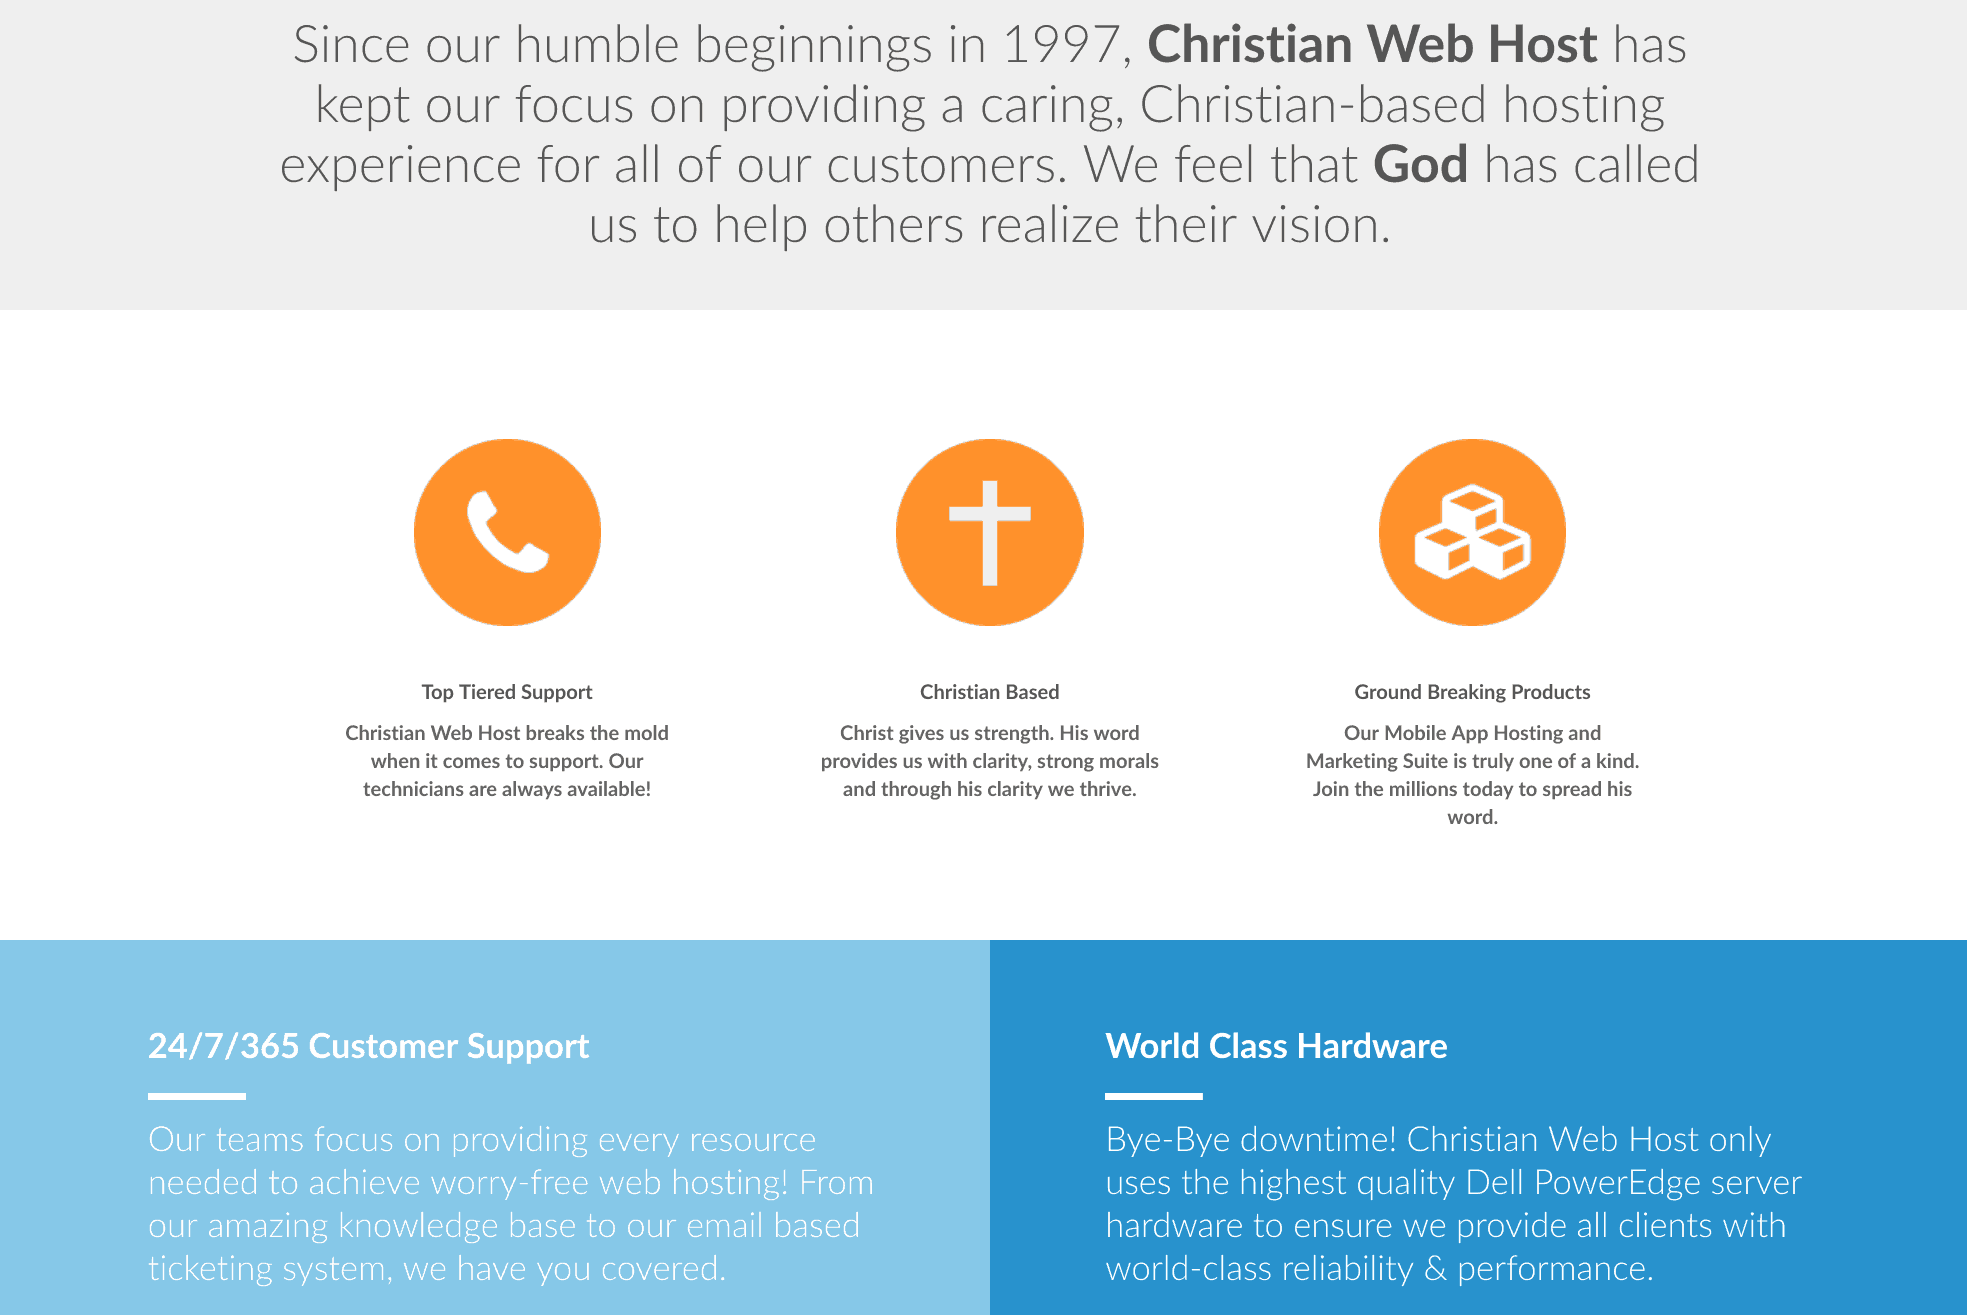 Christian Web Host